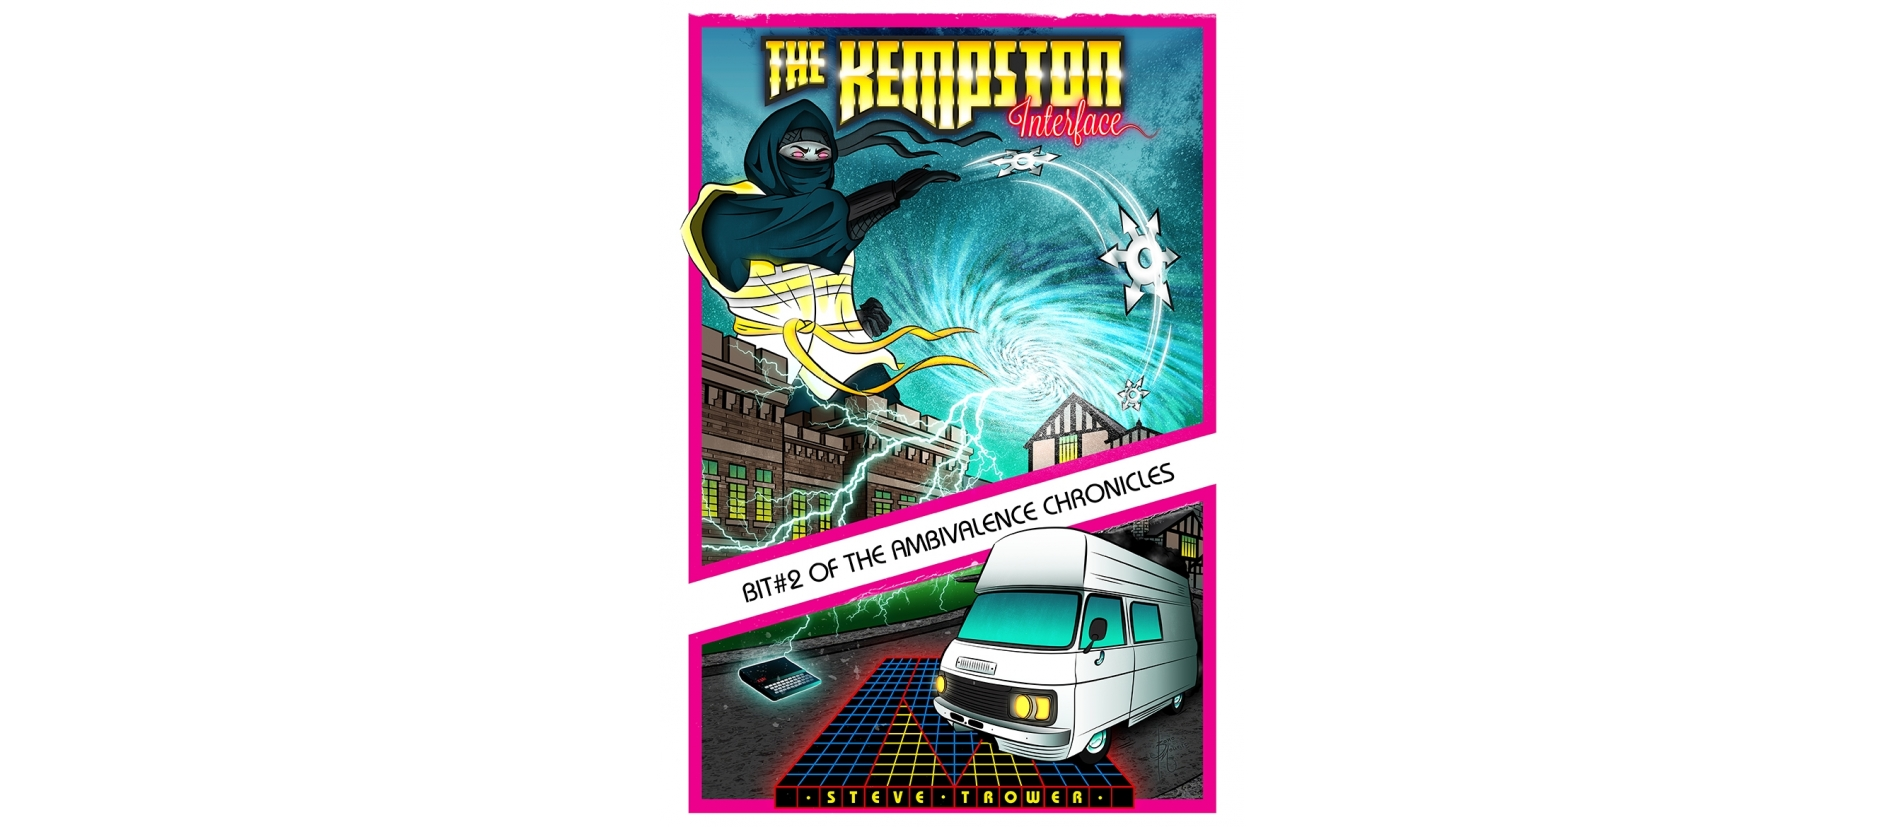 The Kempston Interface cover